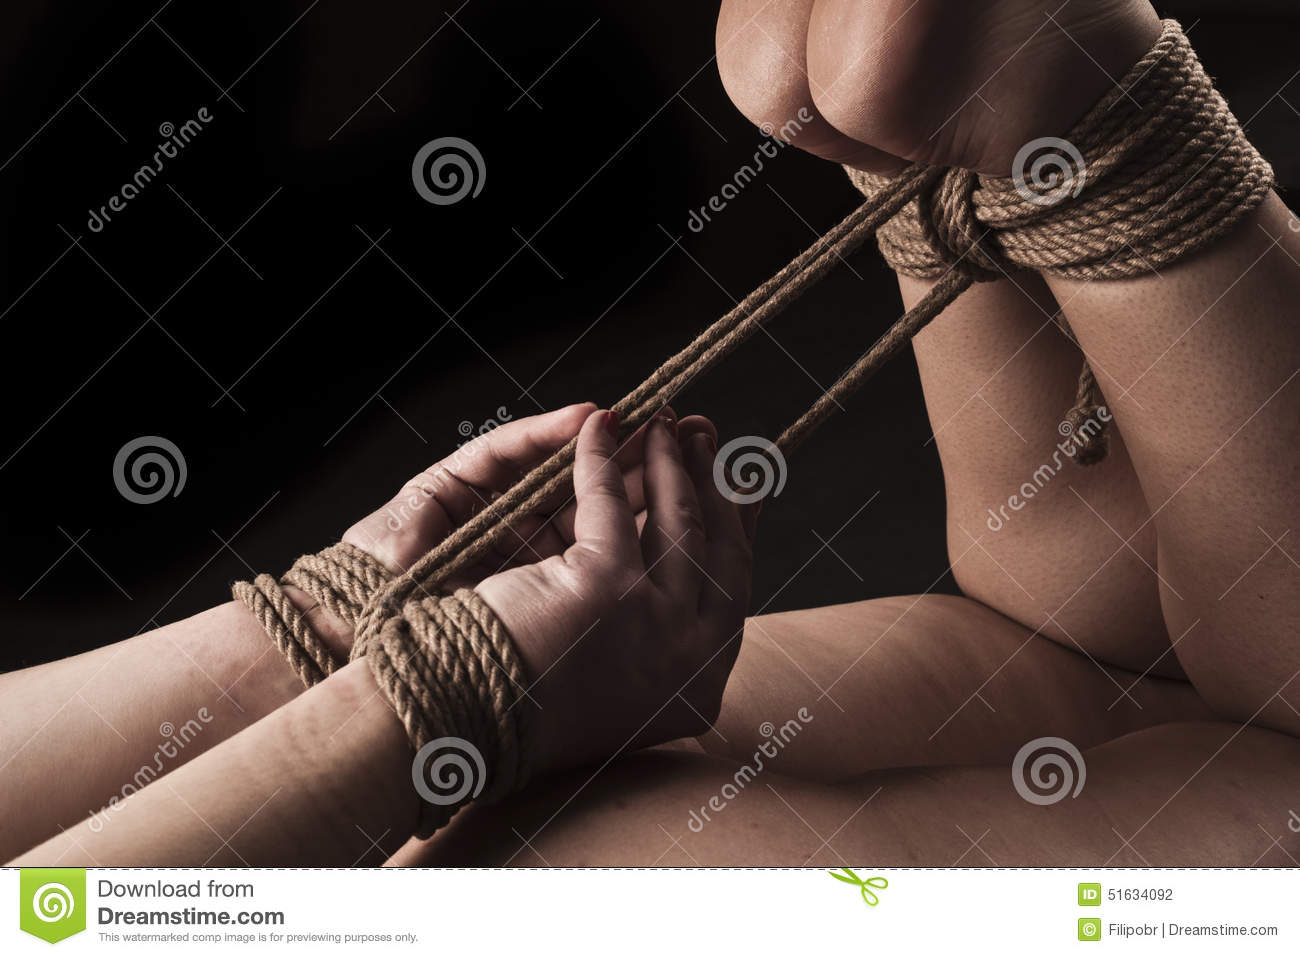 Submissive Woman In Hog Tie Bondage Position On Black Background